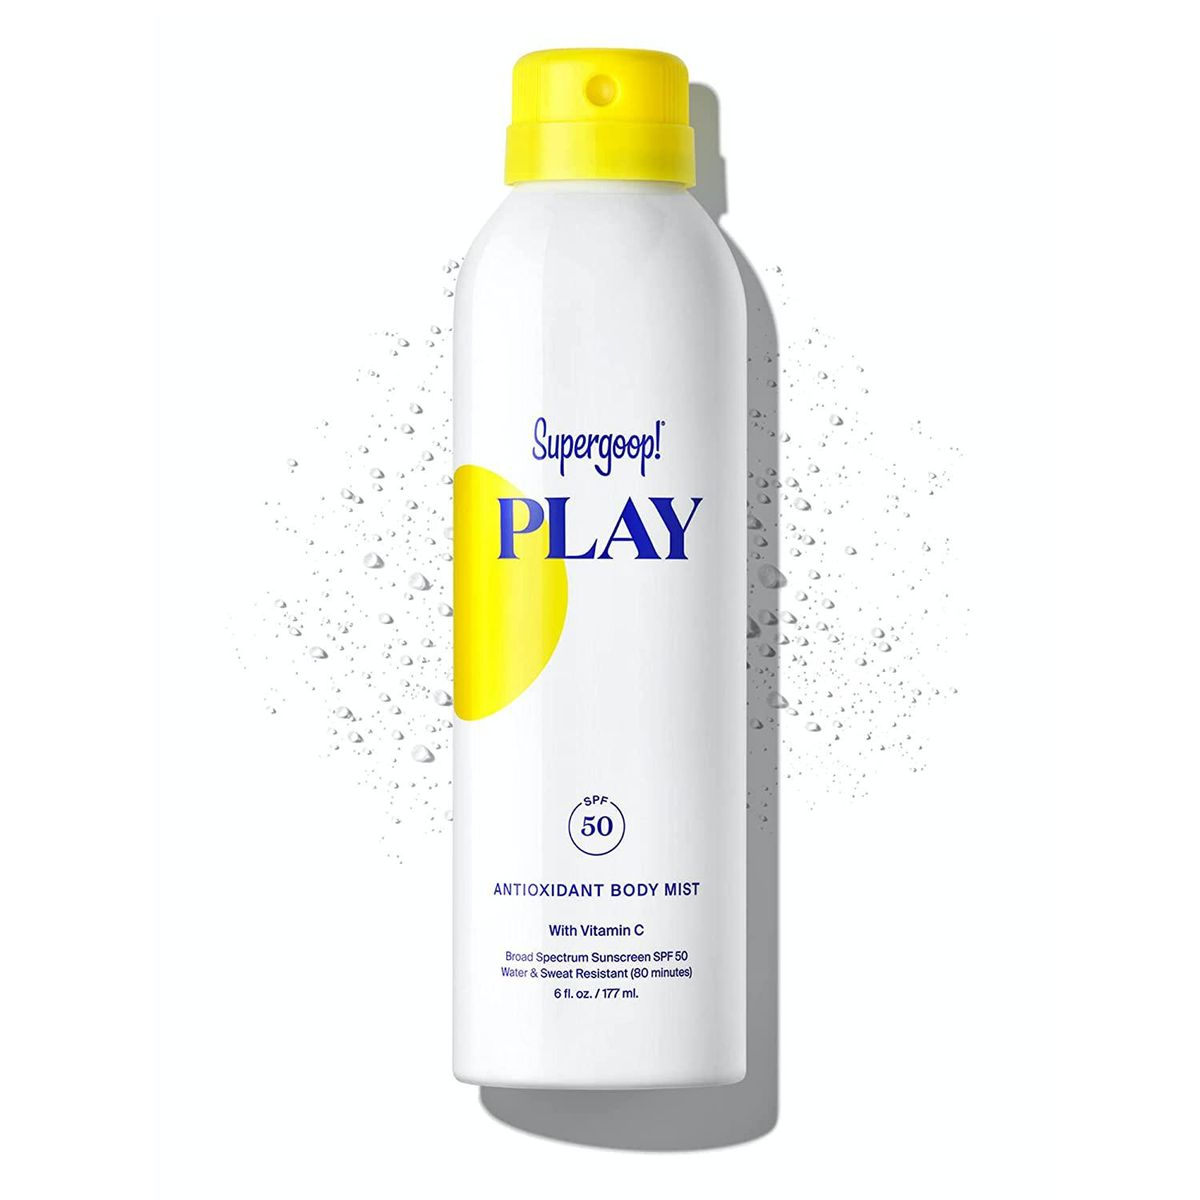 Play SPF 50 Antioxidant-Infused Body Mis